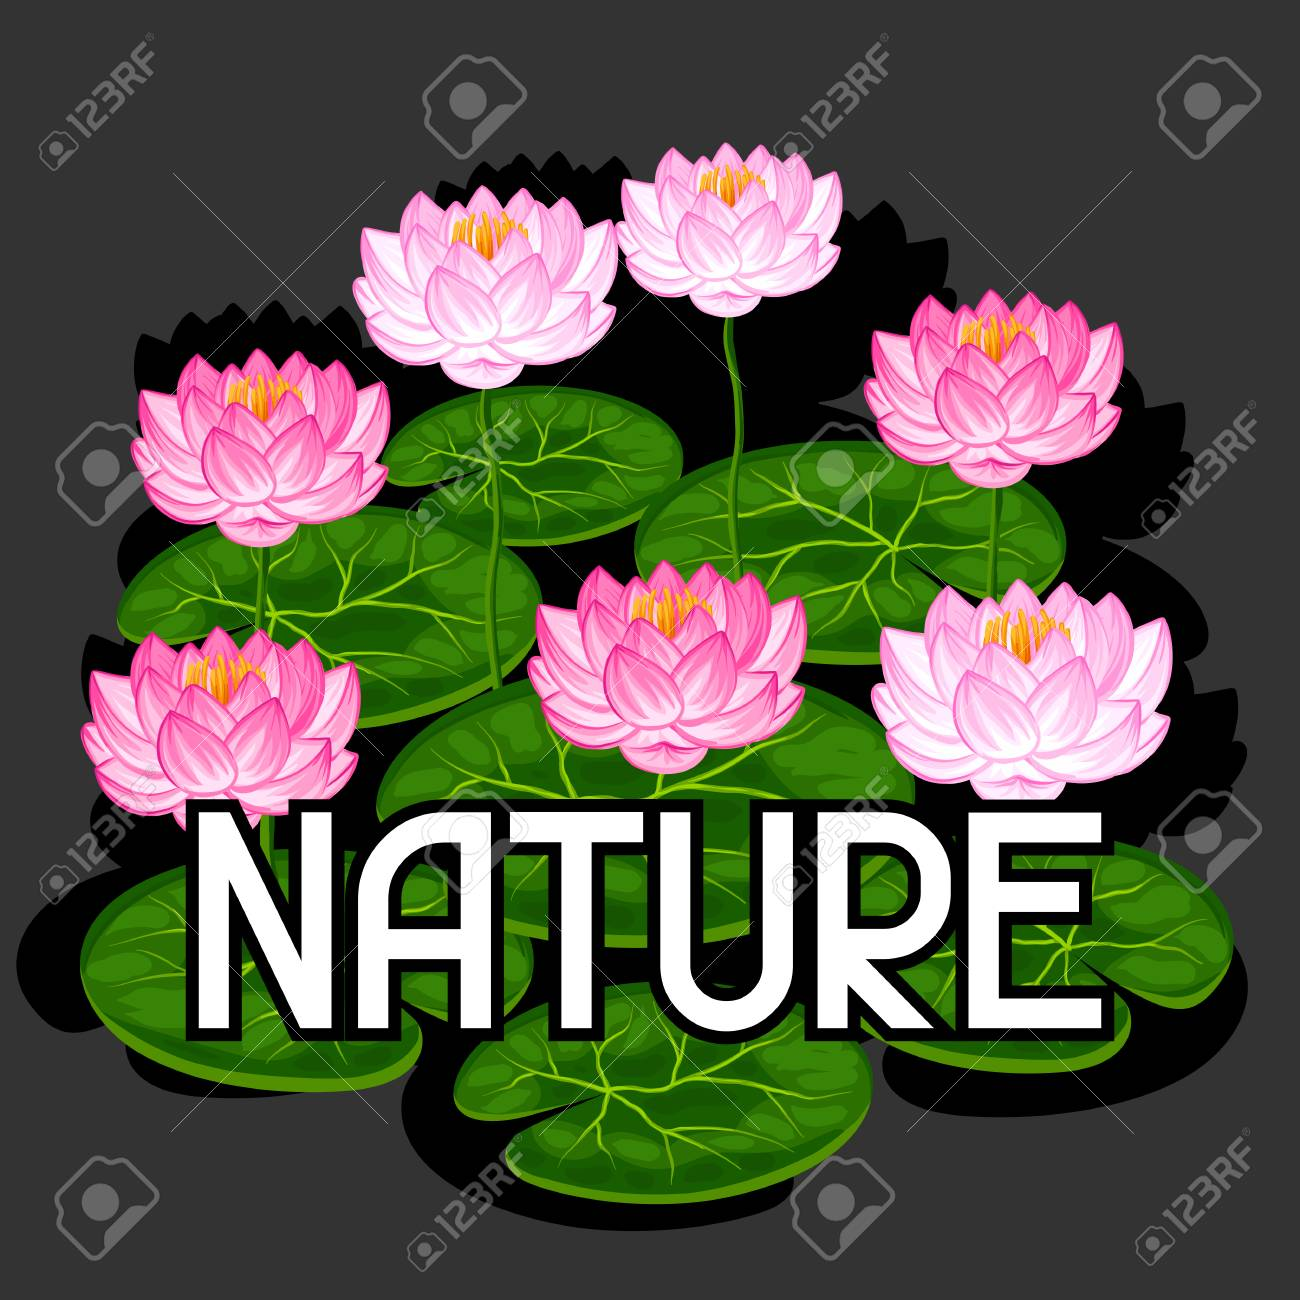 Natural Background With Lotus Flowers And Leaves Image For Design